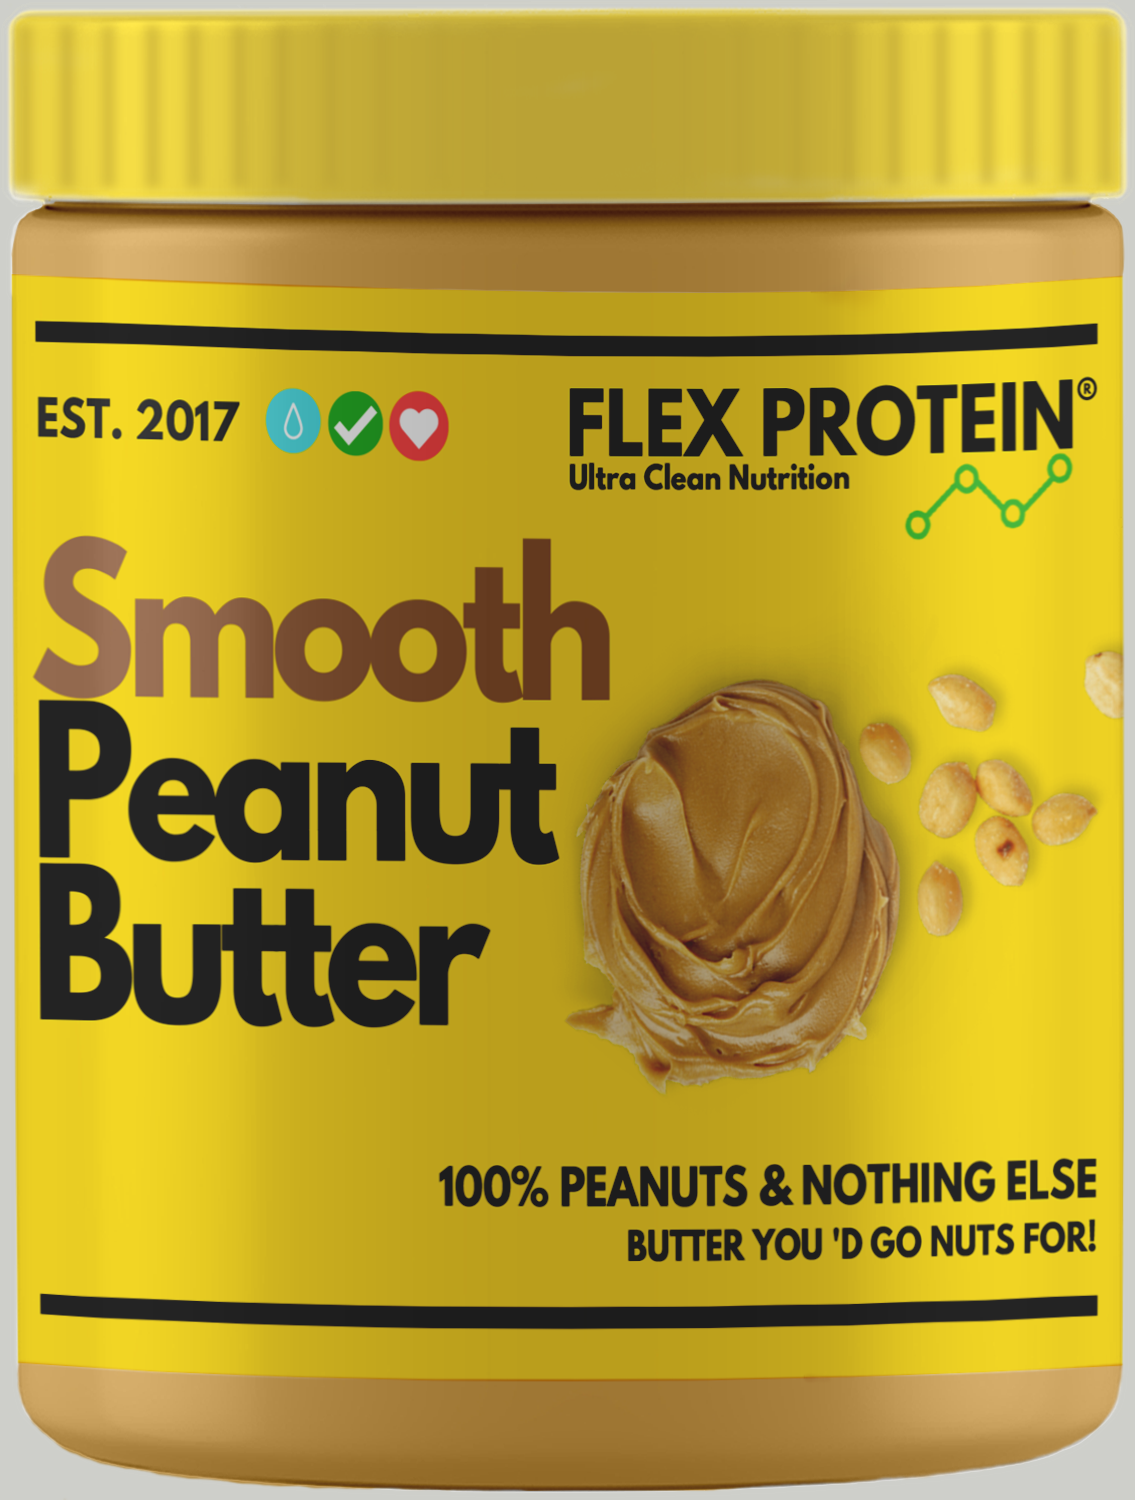 Smooth peanut butter